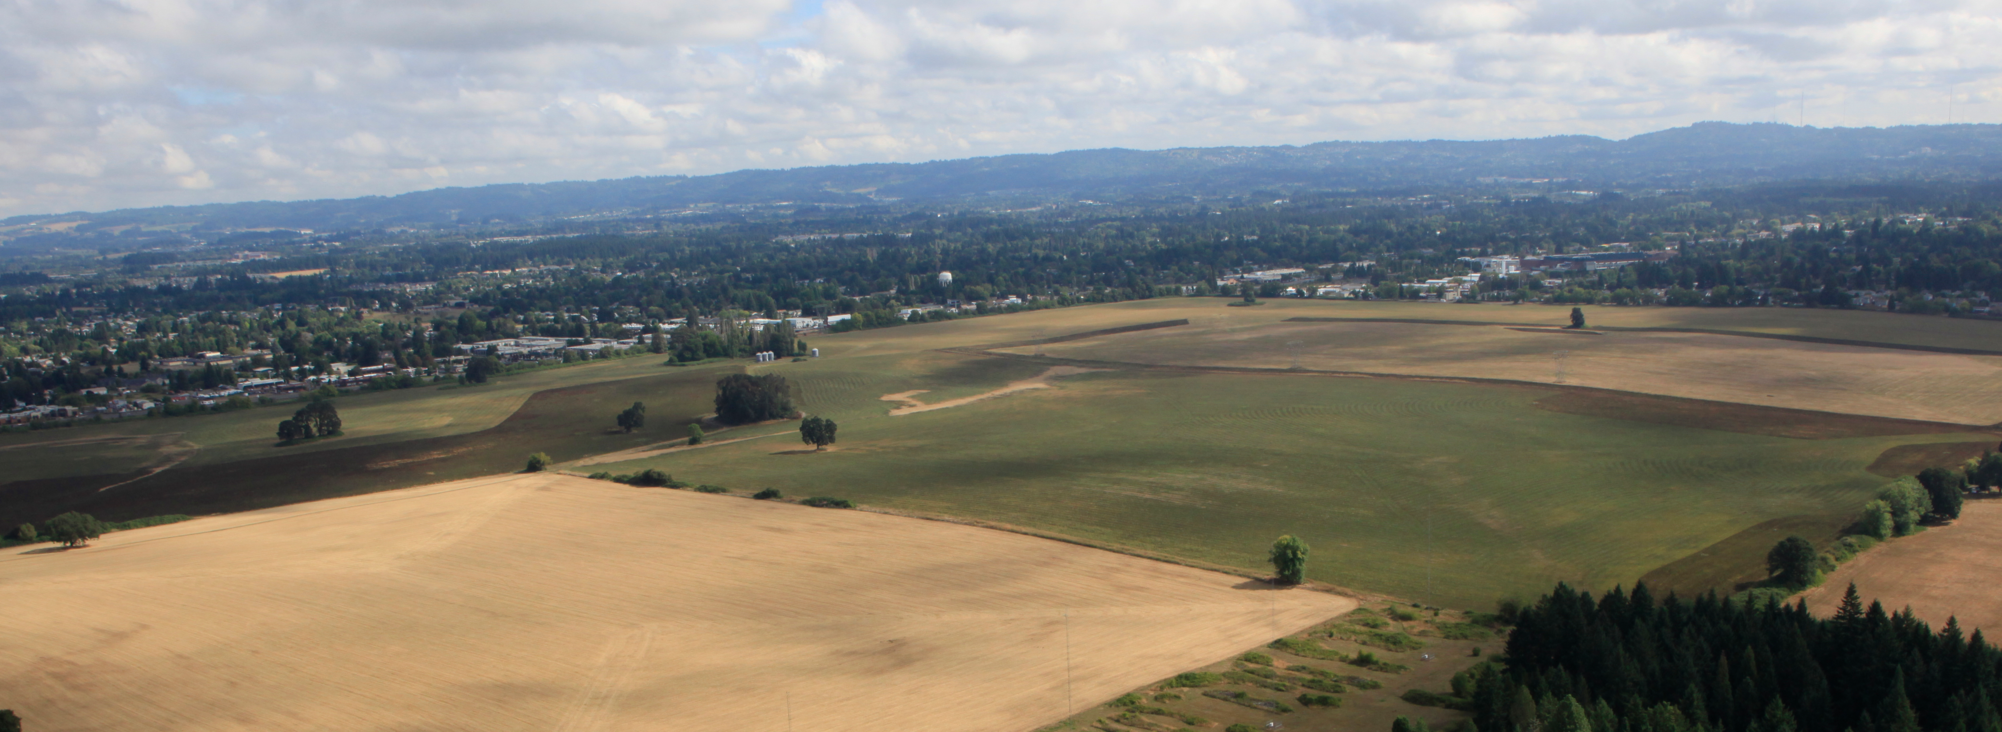 Aerial view of South Hillsboro